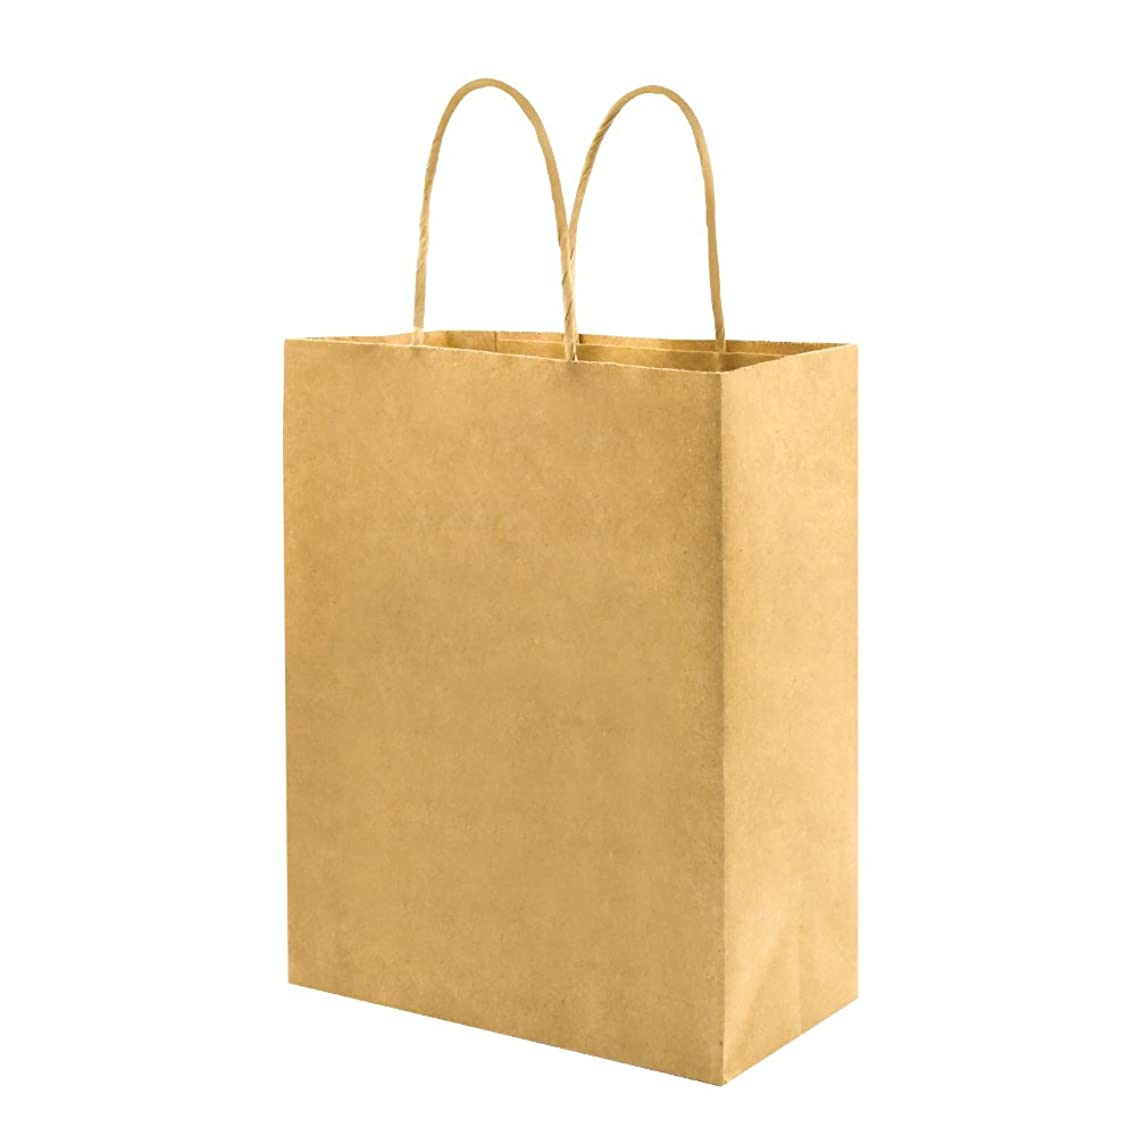 Thick Paper Bags with Handles Bulk, Bagmad Medium Size Brown Kraft Bags 8x4.75x10.5 inch 25 Pcs Pack, Craft Gift Bags, Grocery Shopping Retail Bags, Party Wedding Bags Sacks (Brown 25pcs)